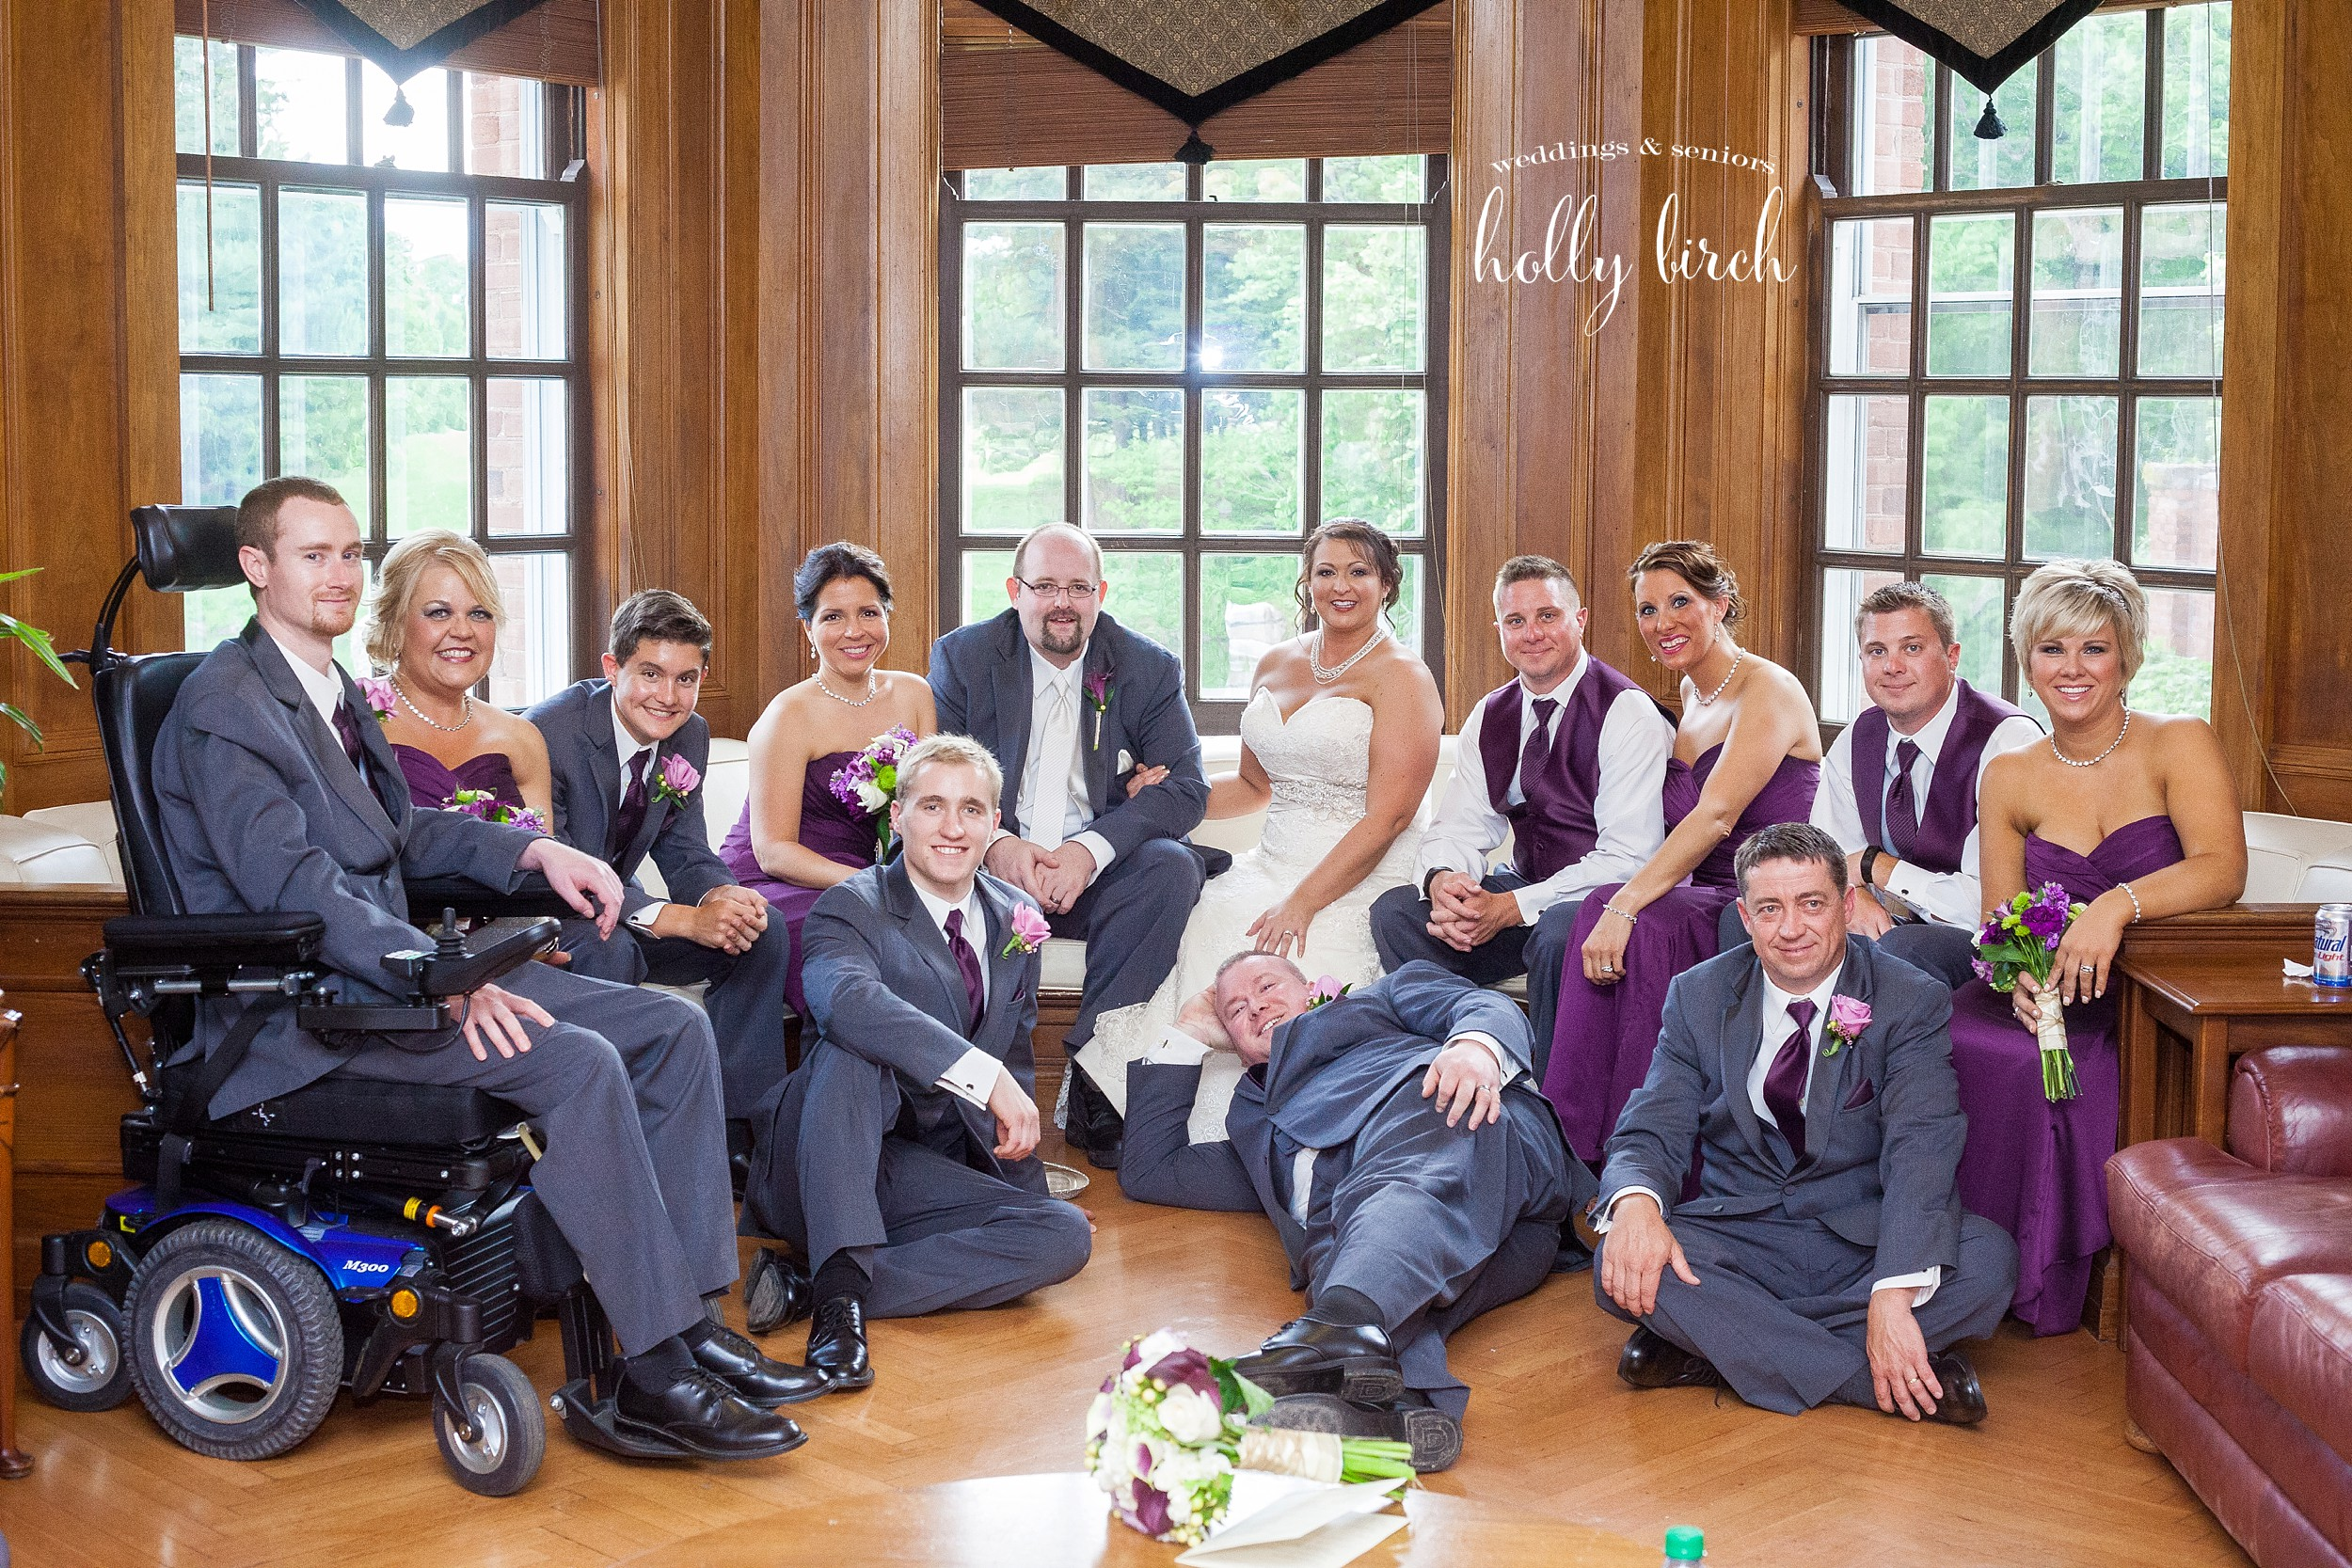 casual wedding party image